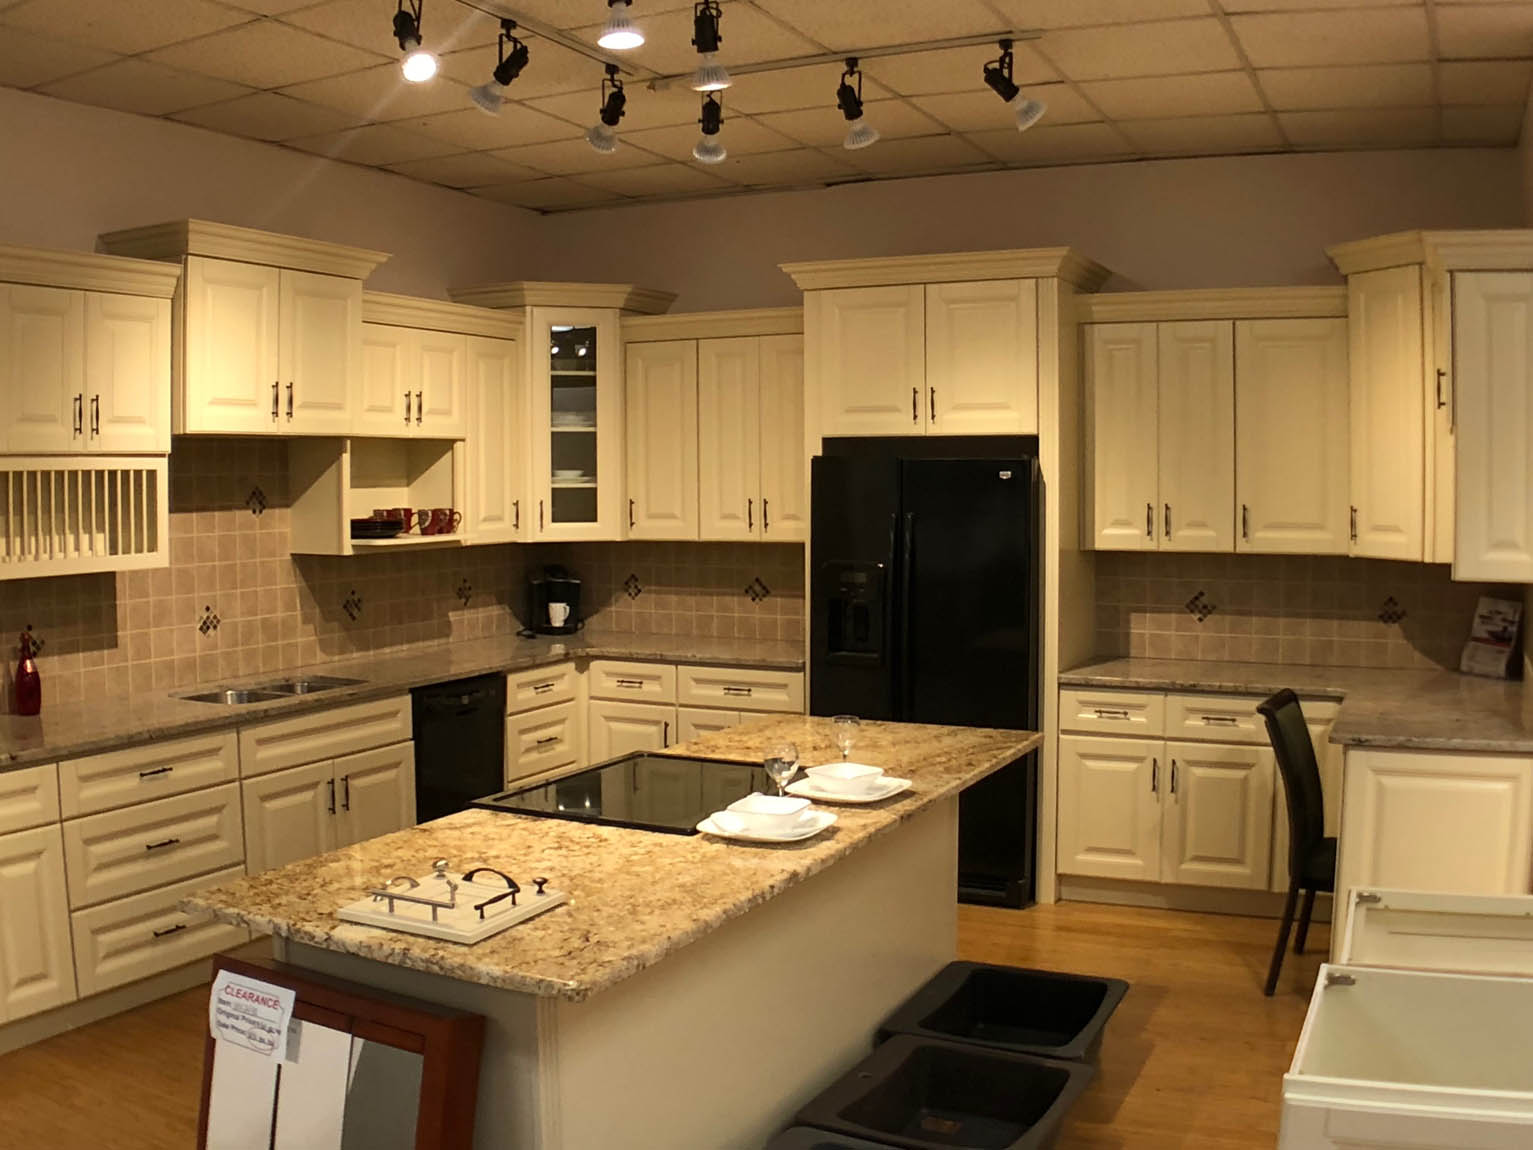 How to Start a Successful Kitchen Remodel Project